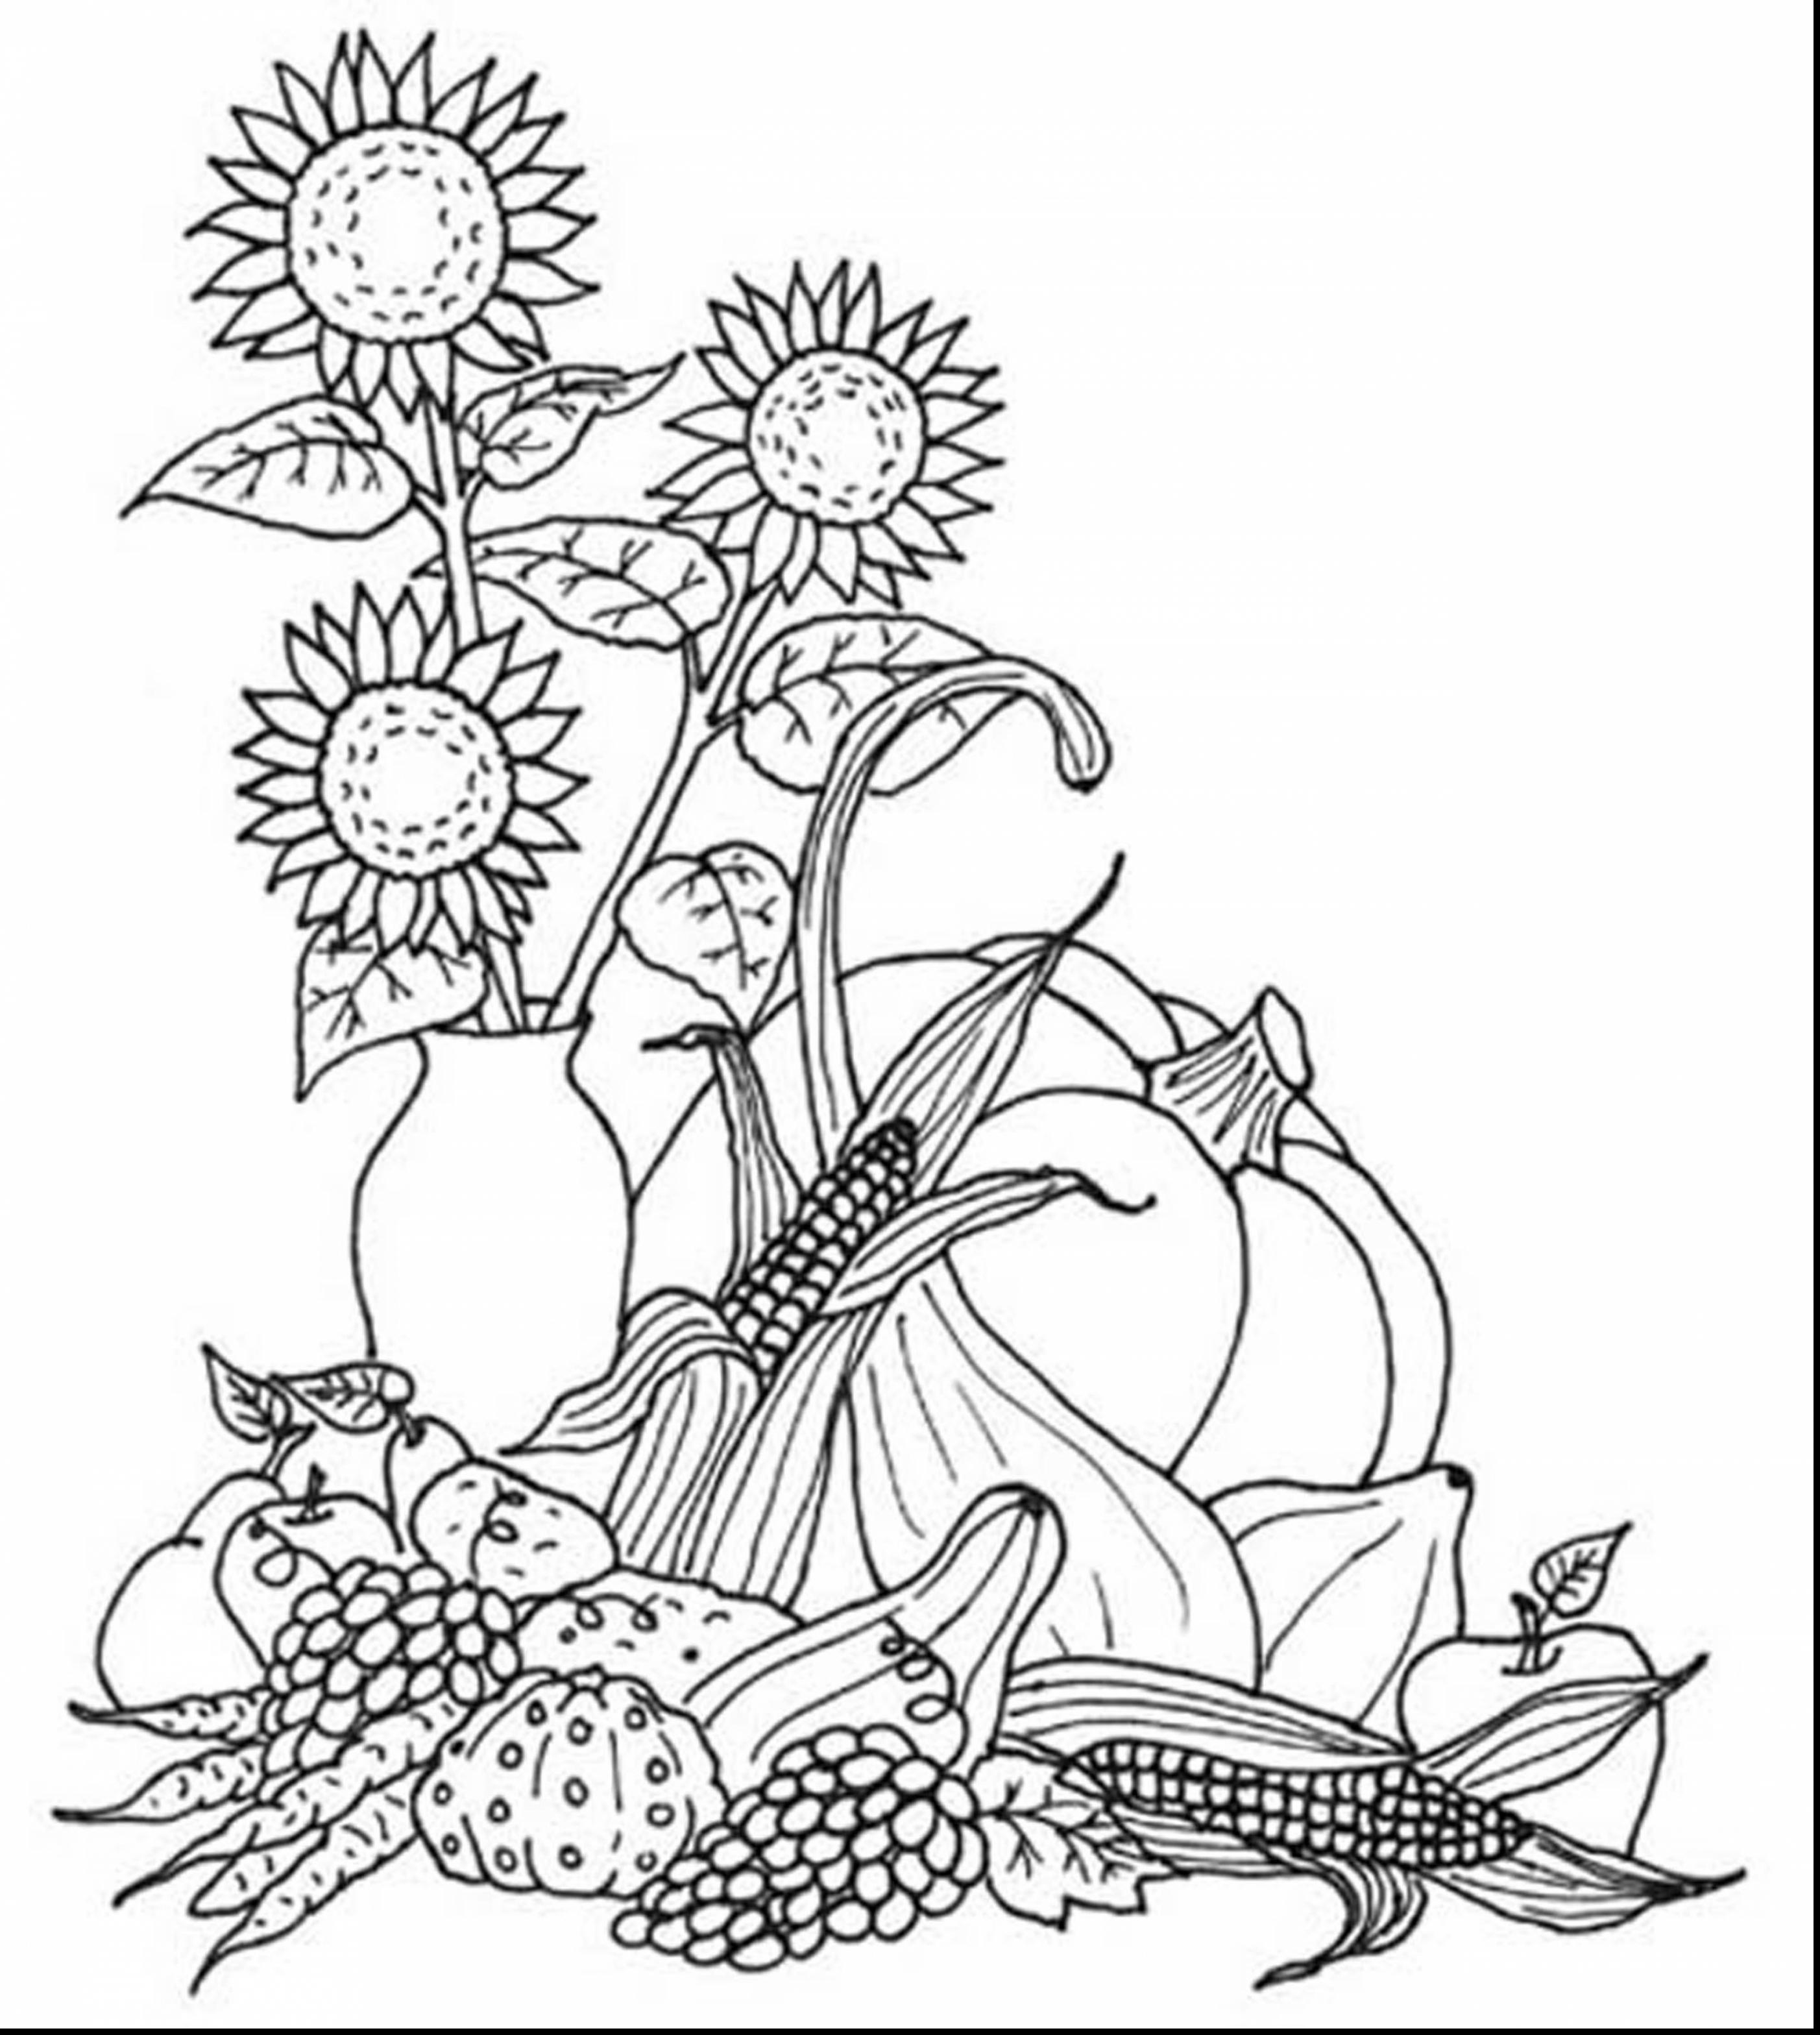 Harvest Coloring Pages Printables - Free Printable Fall Harvest Coloring Pages